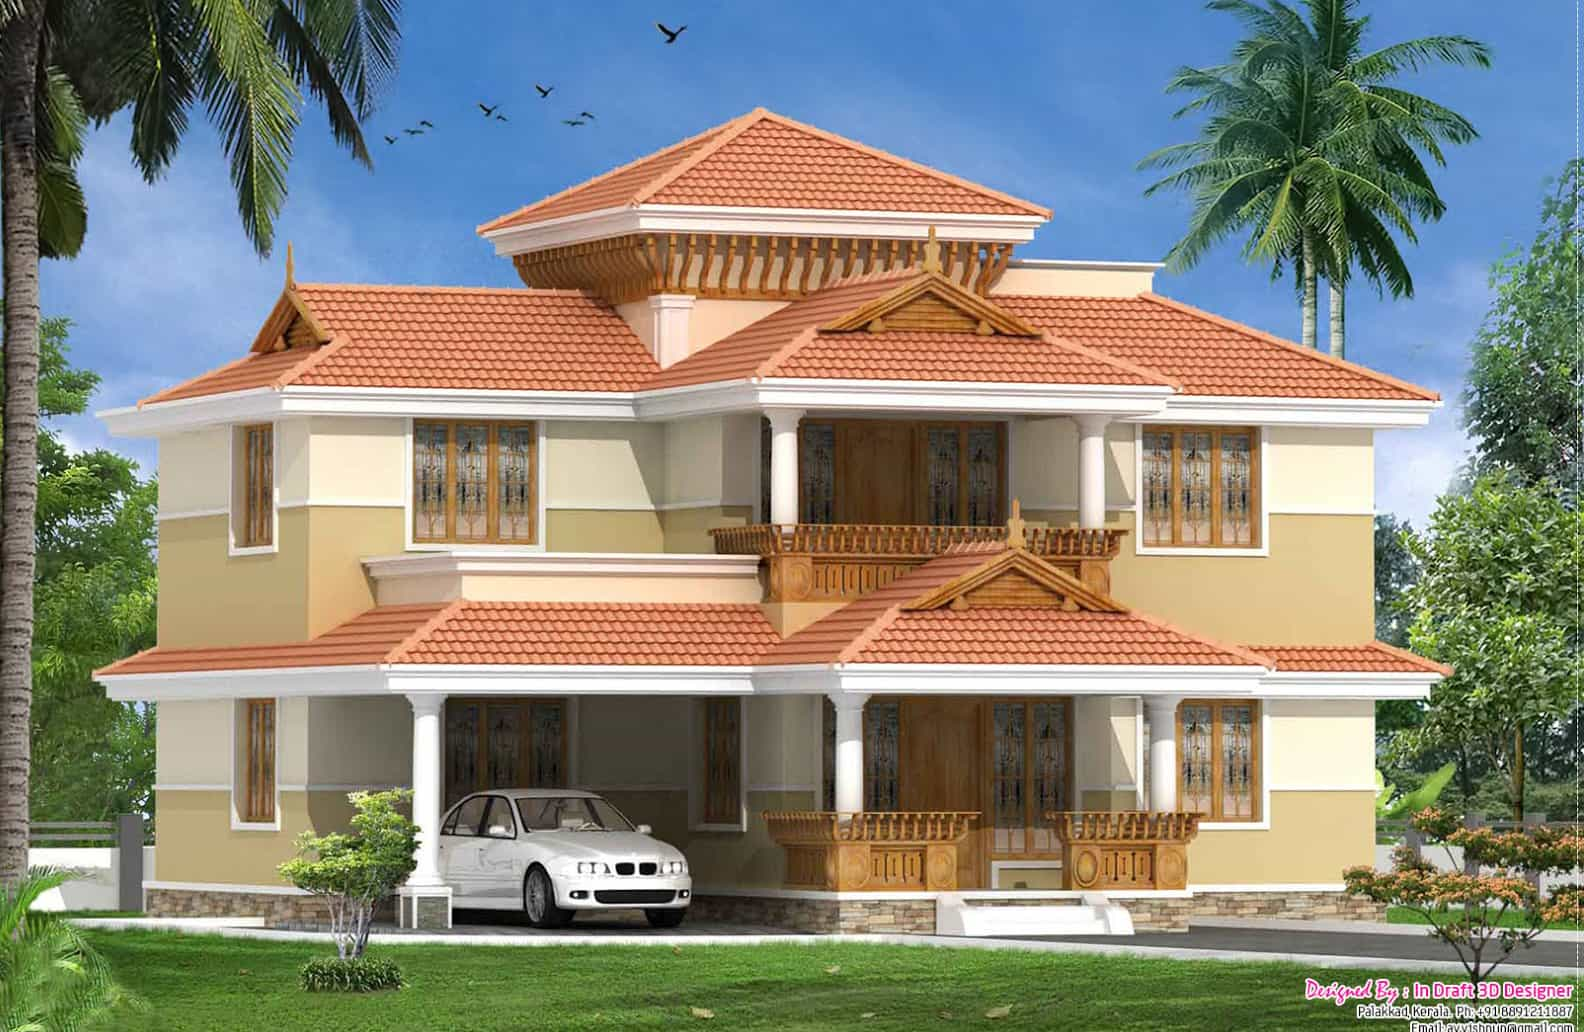 kerala model villa - 17+ Small House Plans In Kerala With Photos  Images